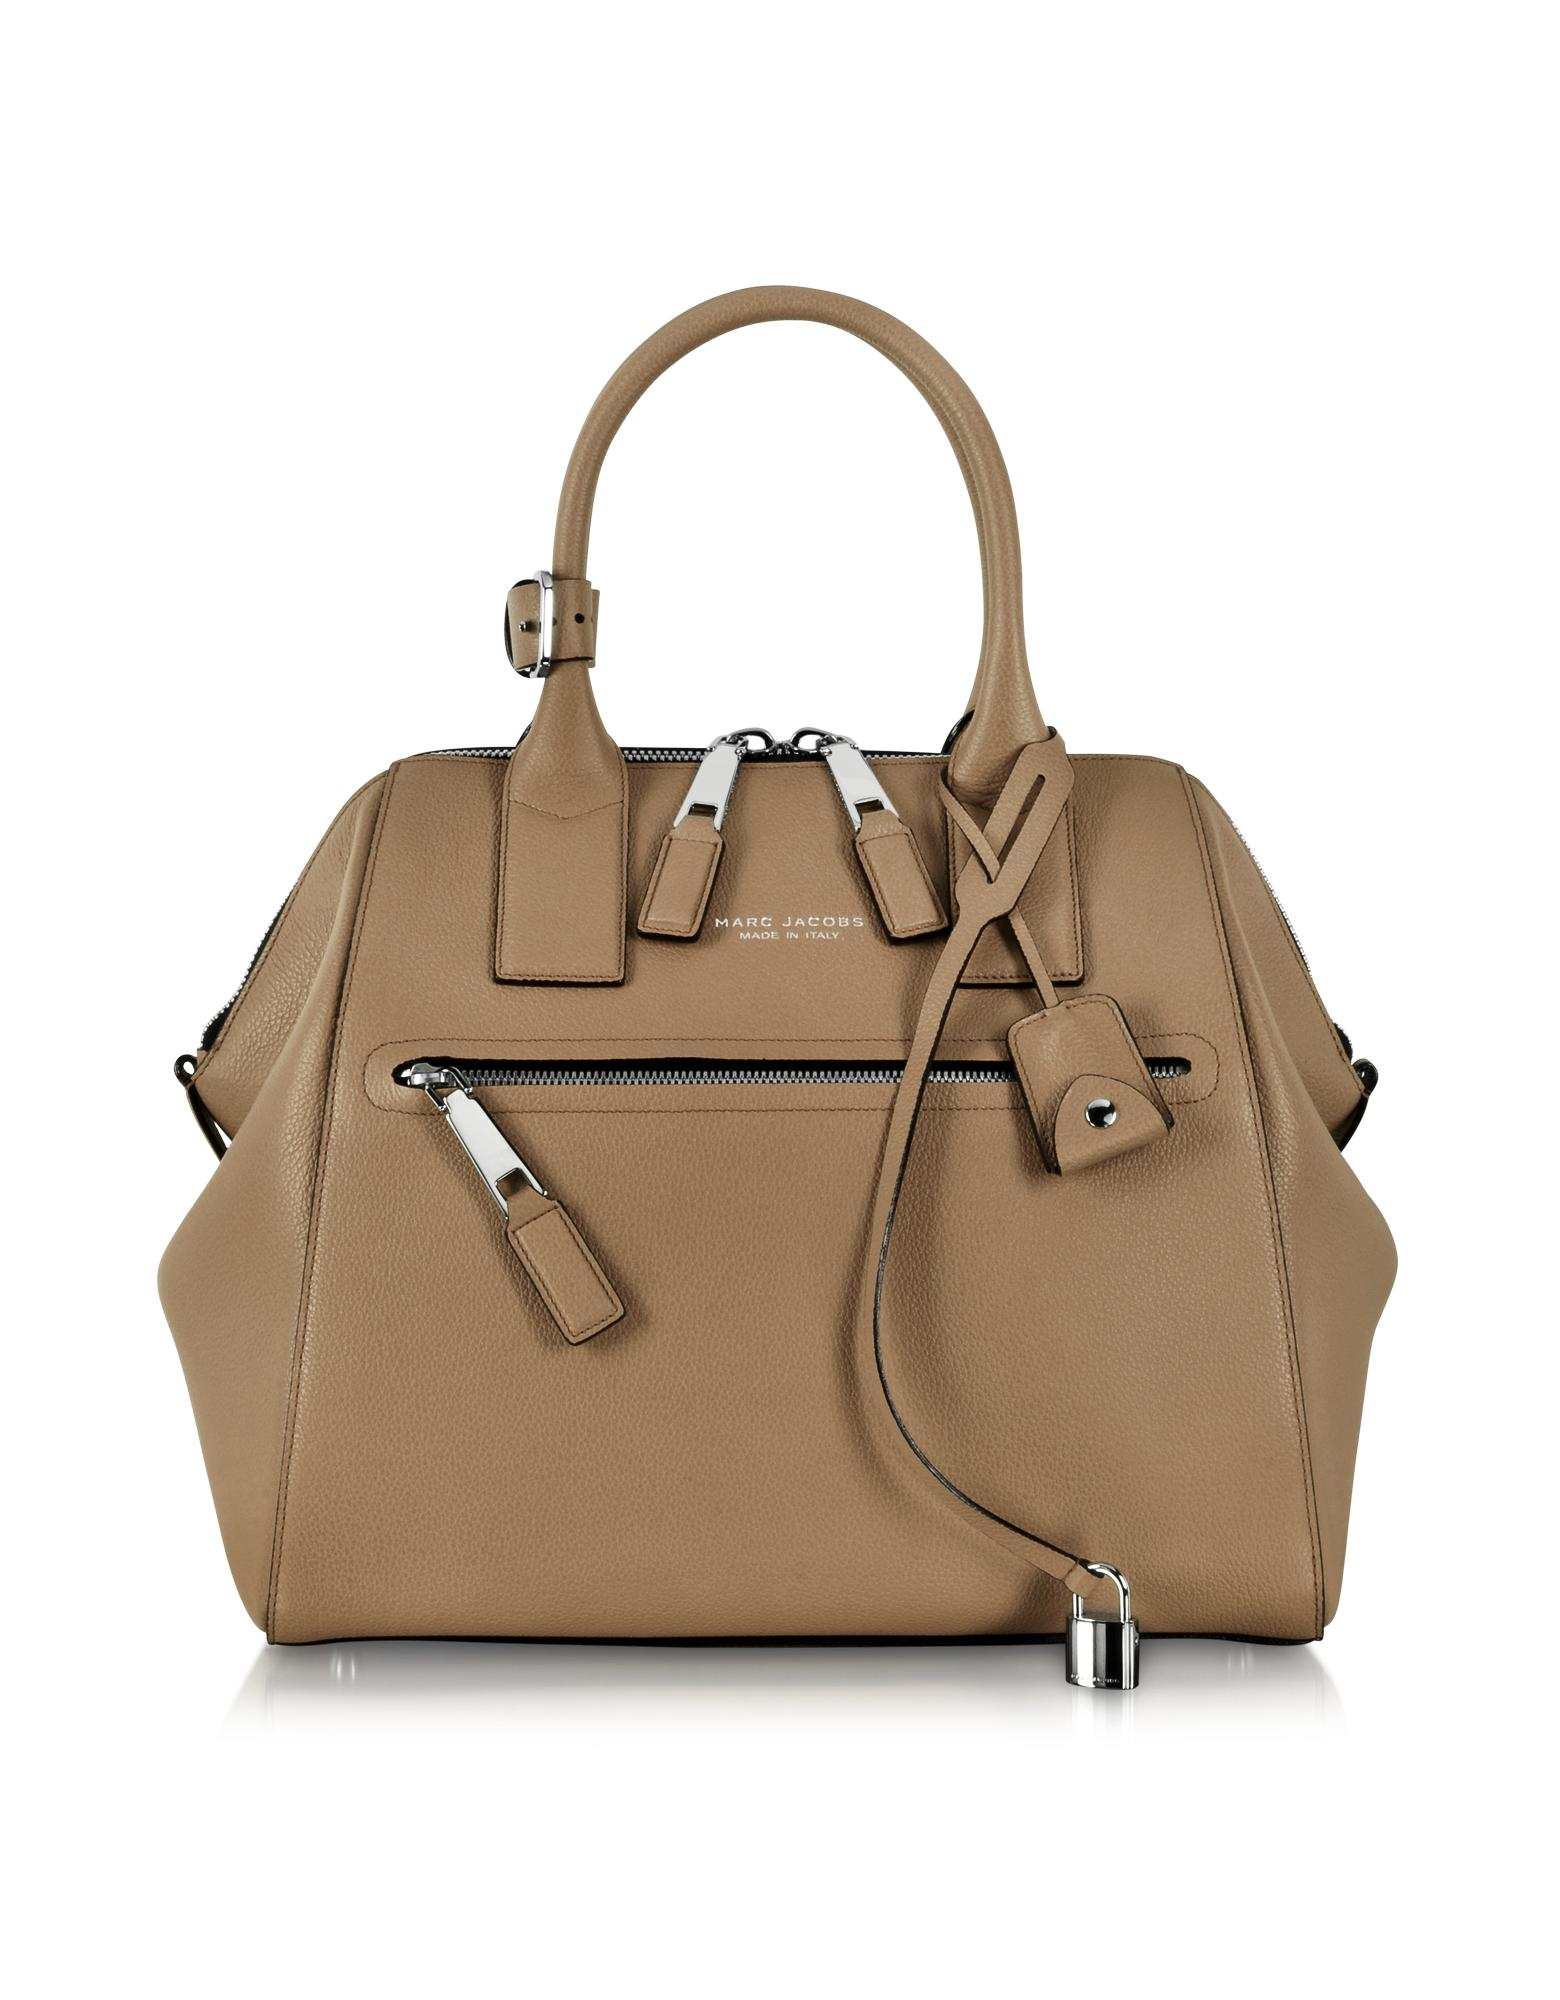 Large Incognito Brown Textured Leather Tote Bag - Marc Jacobs